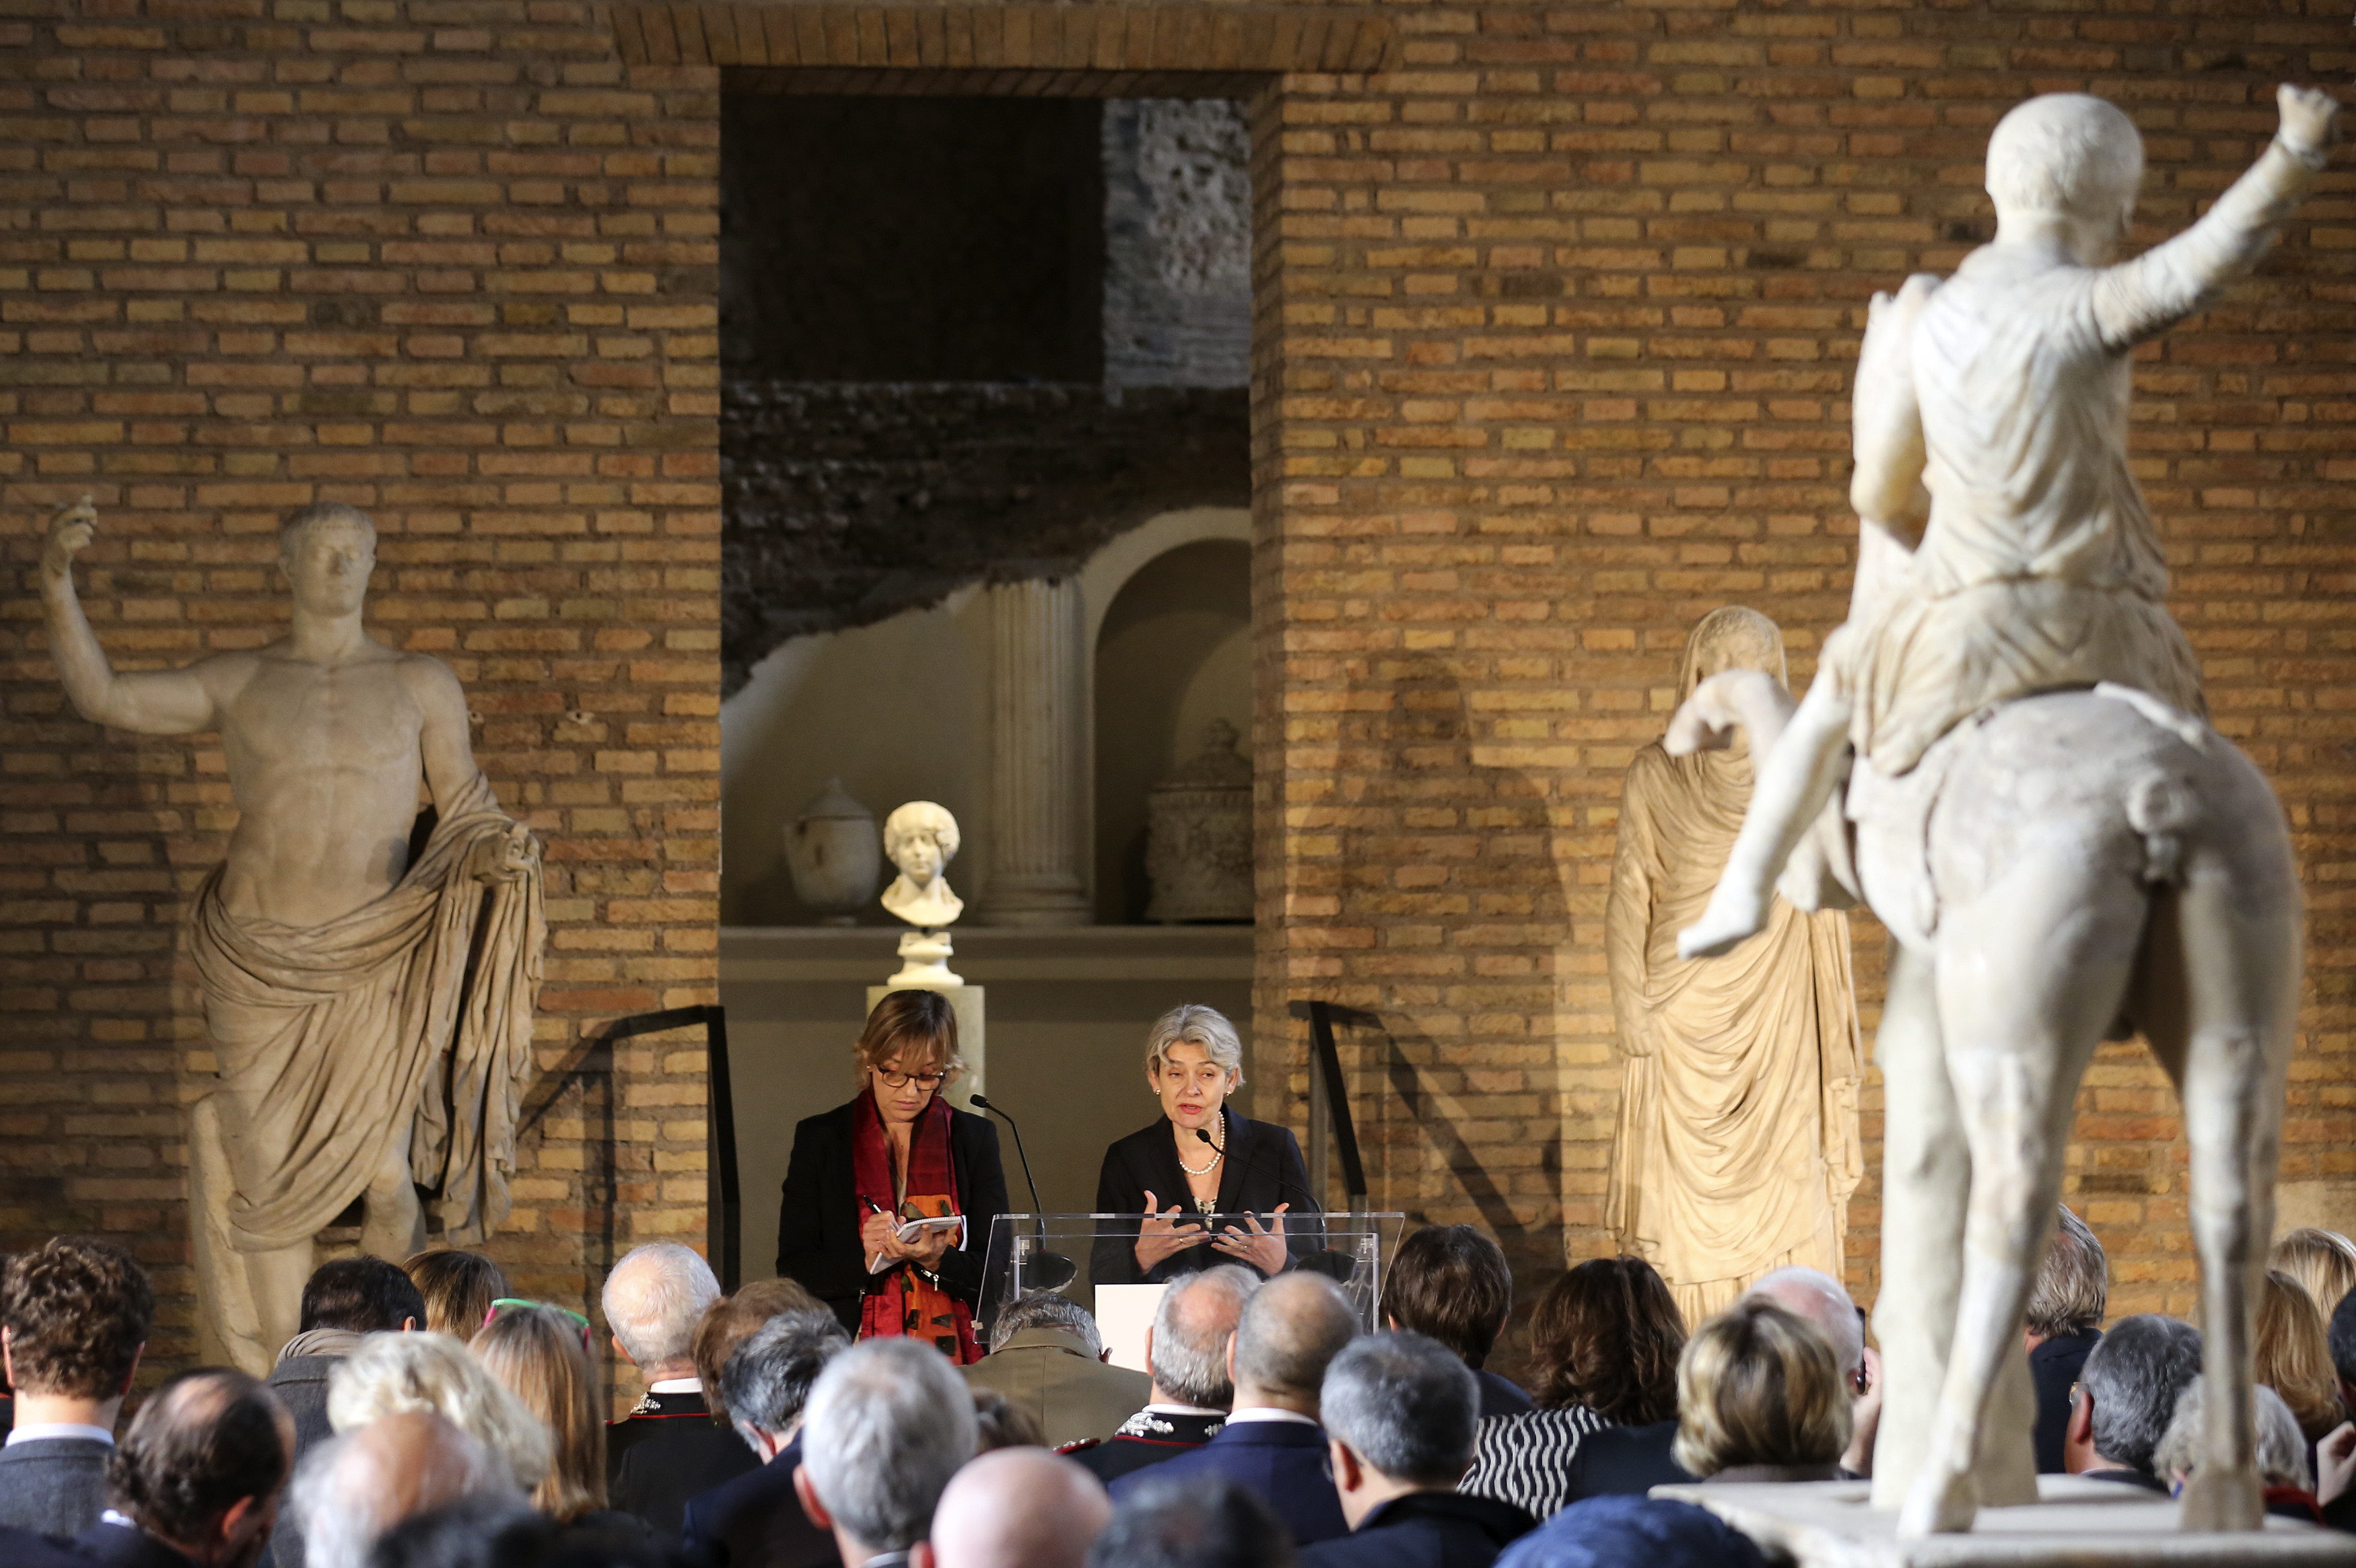 Irina Bokova at the presentation of the Unite for Heritage operation, a UN-backed task force to protect monuments and cultural sites.